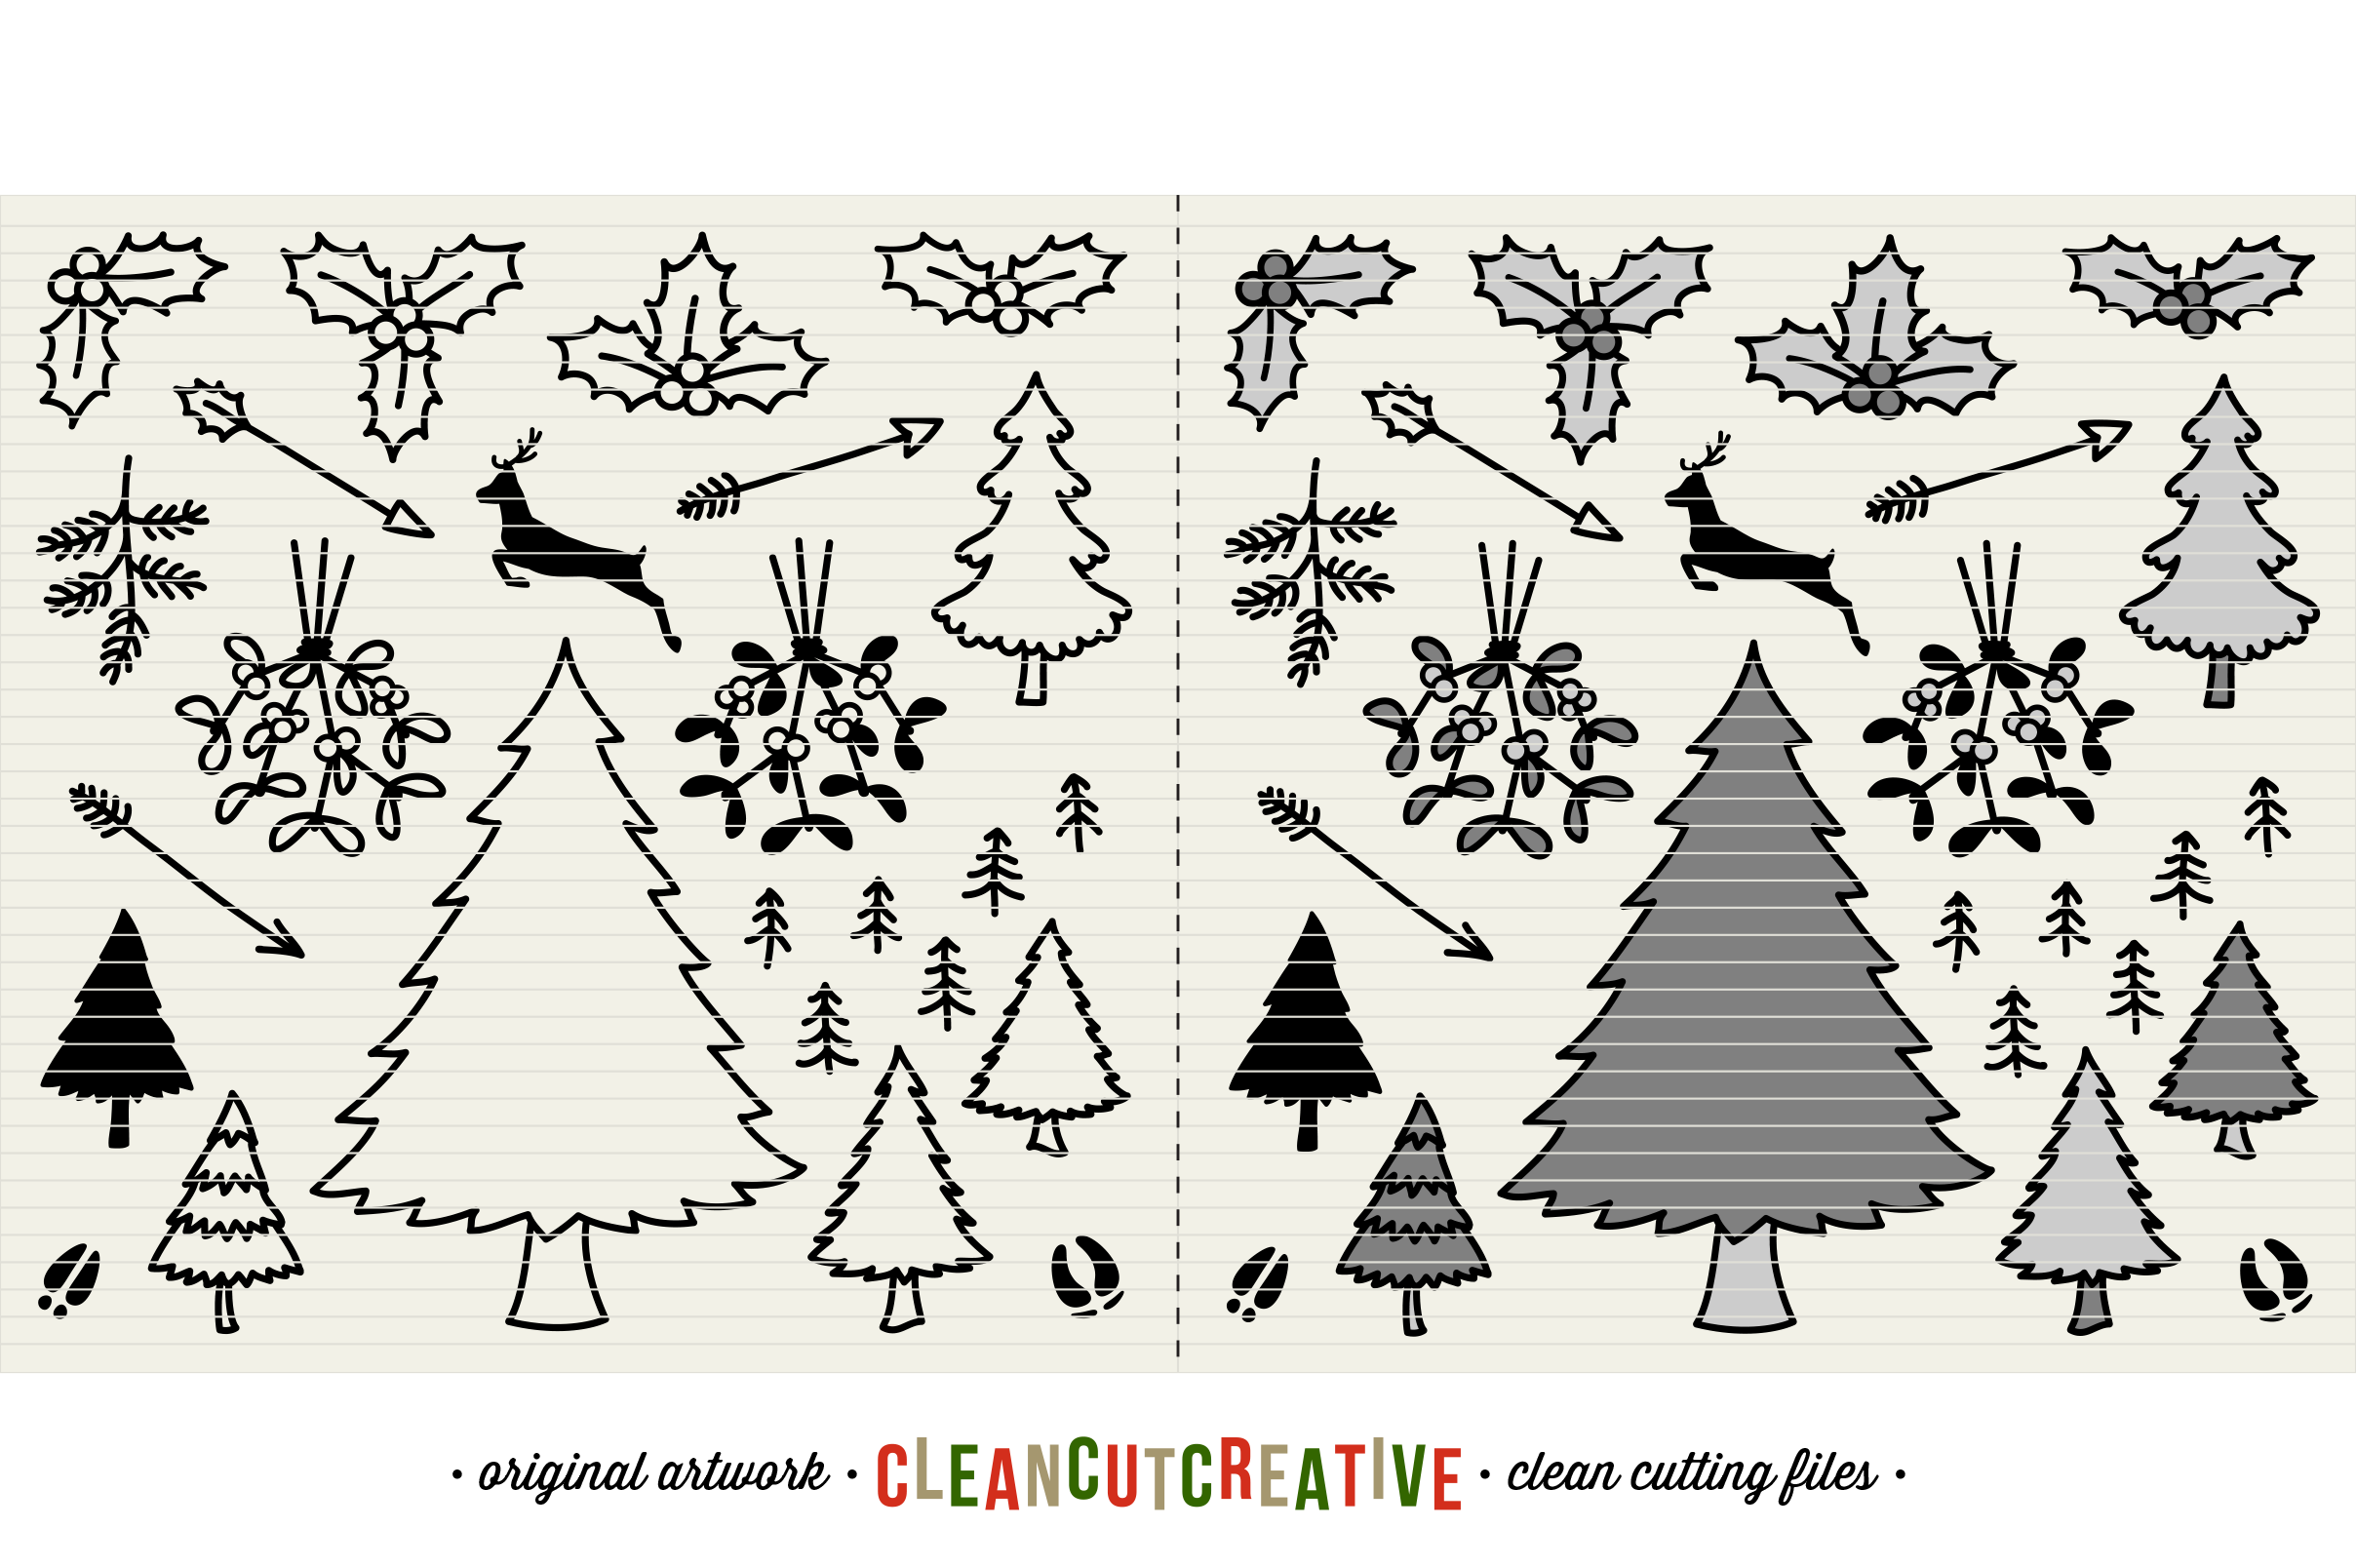 The Crafters Christmas Toolkit - 150+ Christmas Design Elements - SVG DXF EPS - Cricut & Silhouette - clean cutting files example image 8